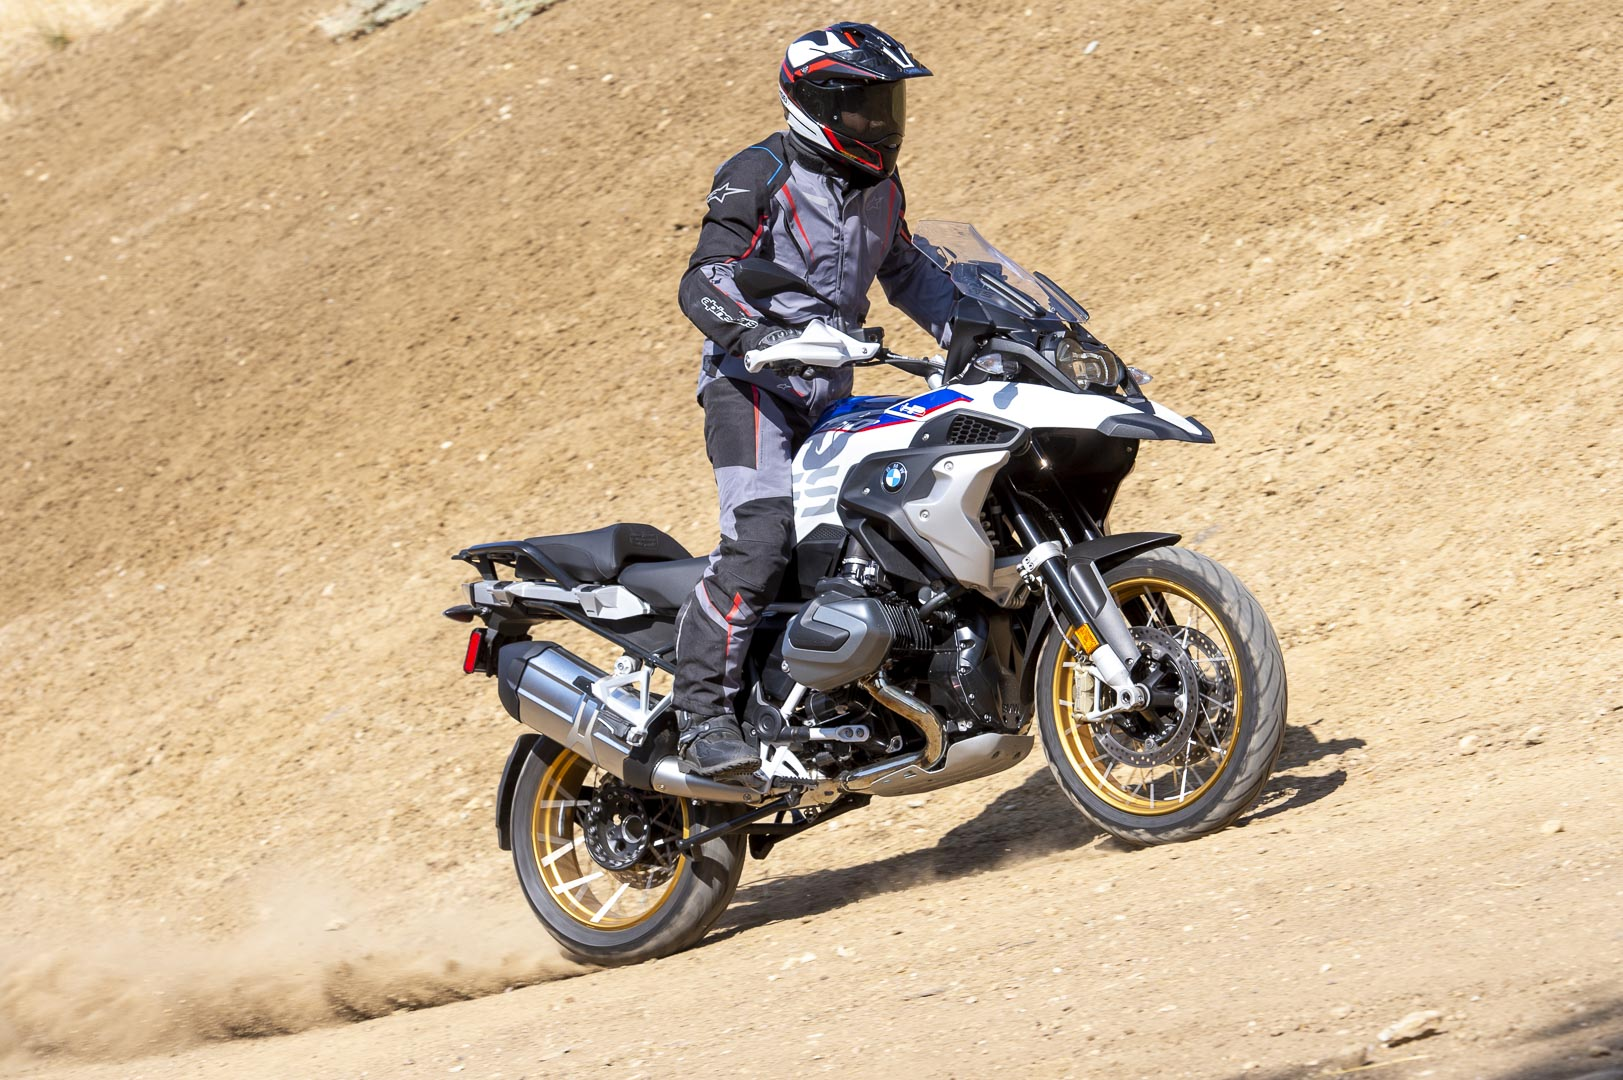 2019 BMW R1250GS off-road review